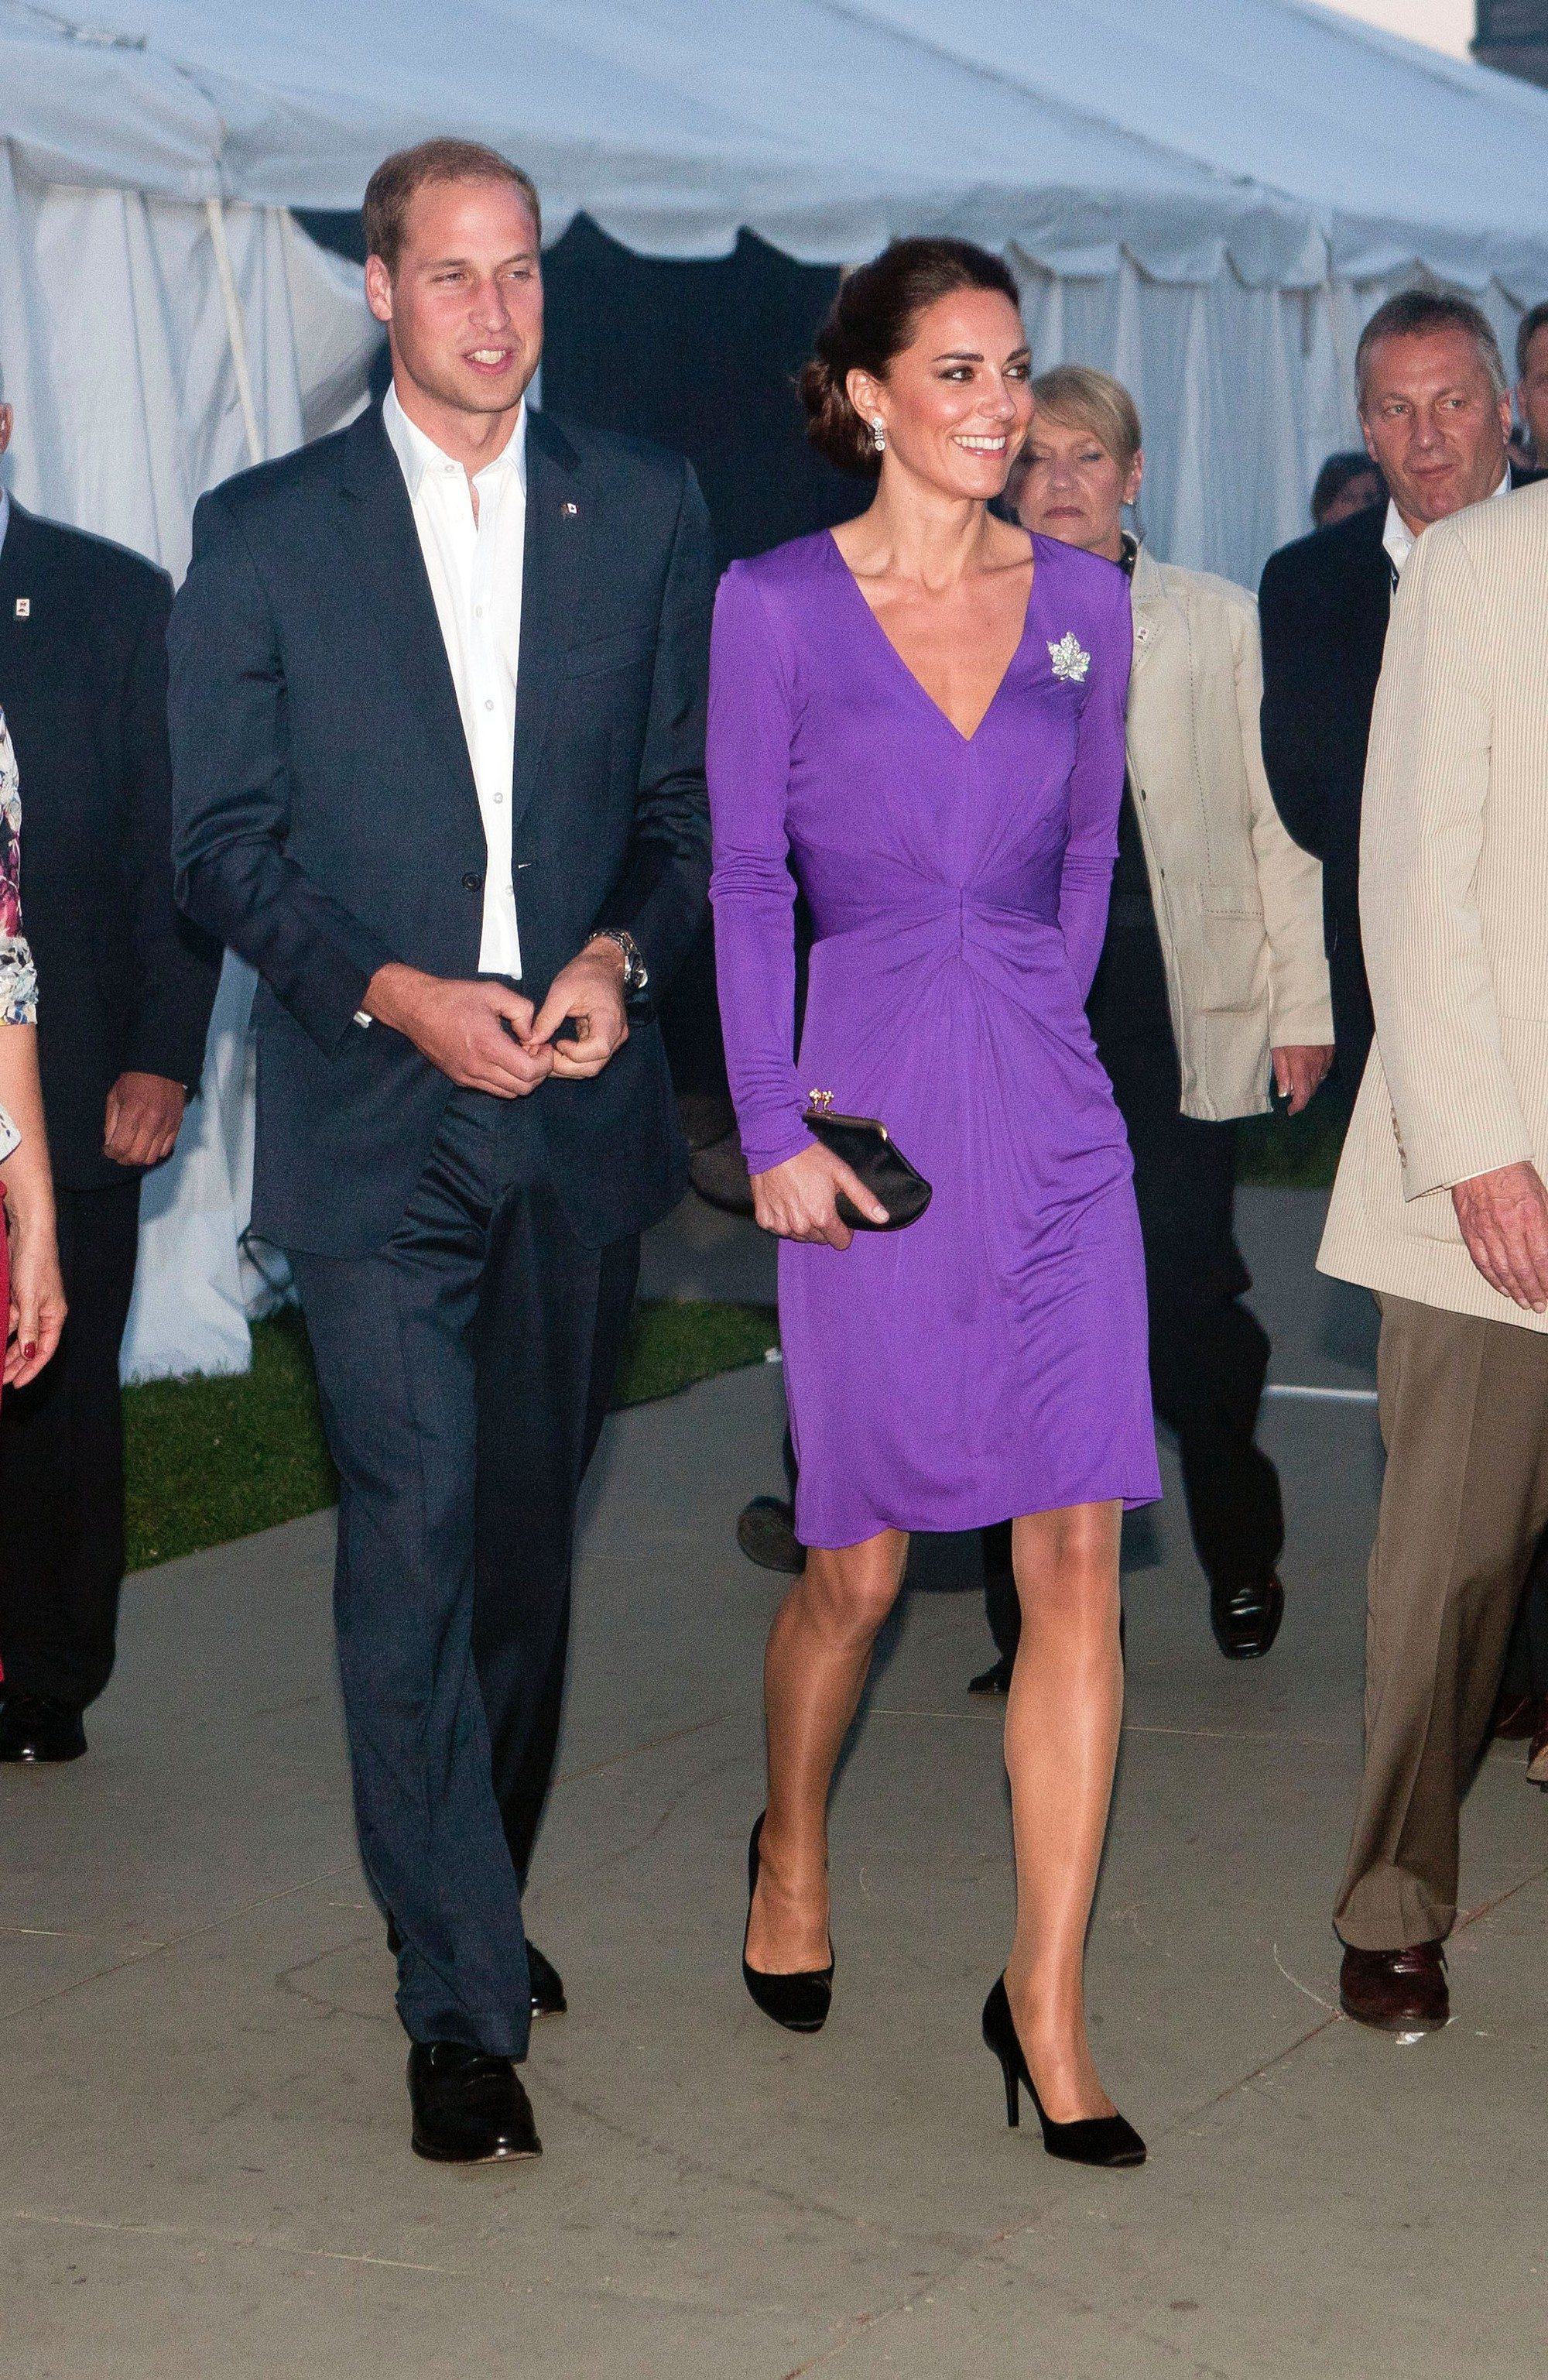 kate-donned-purple-frock-special-event-ottawa-canada-1538111107259154004886